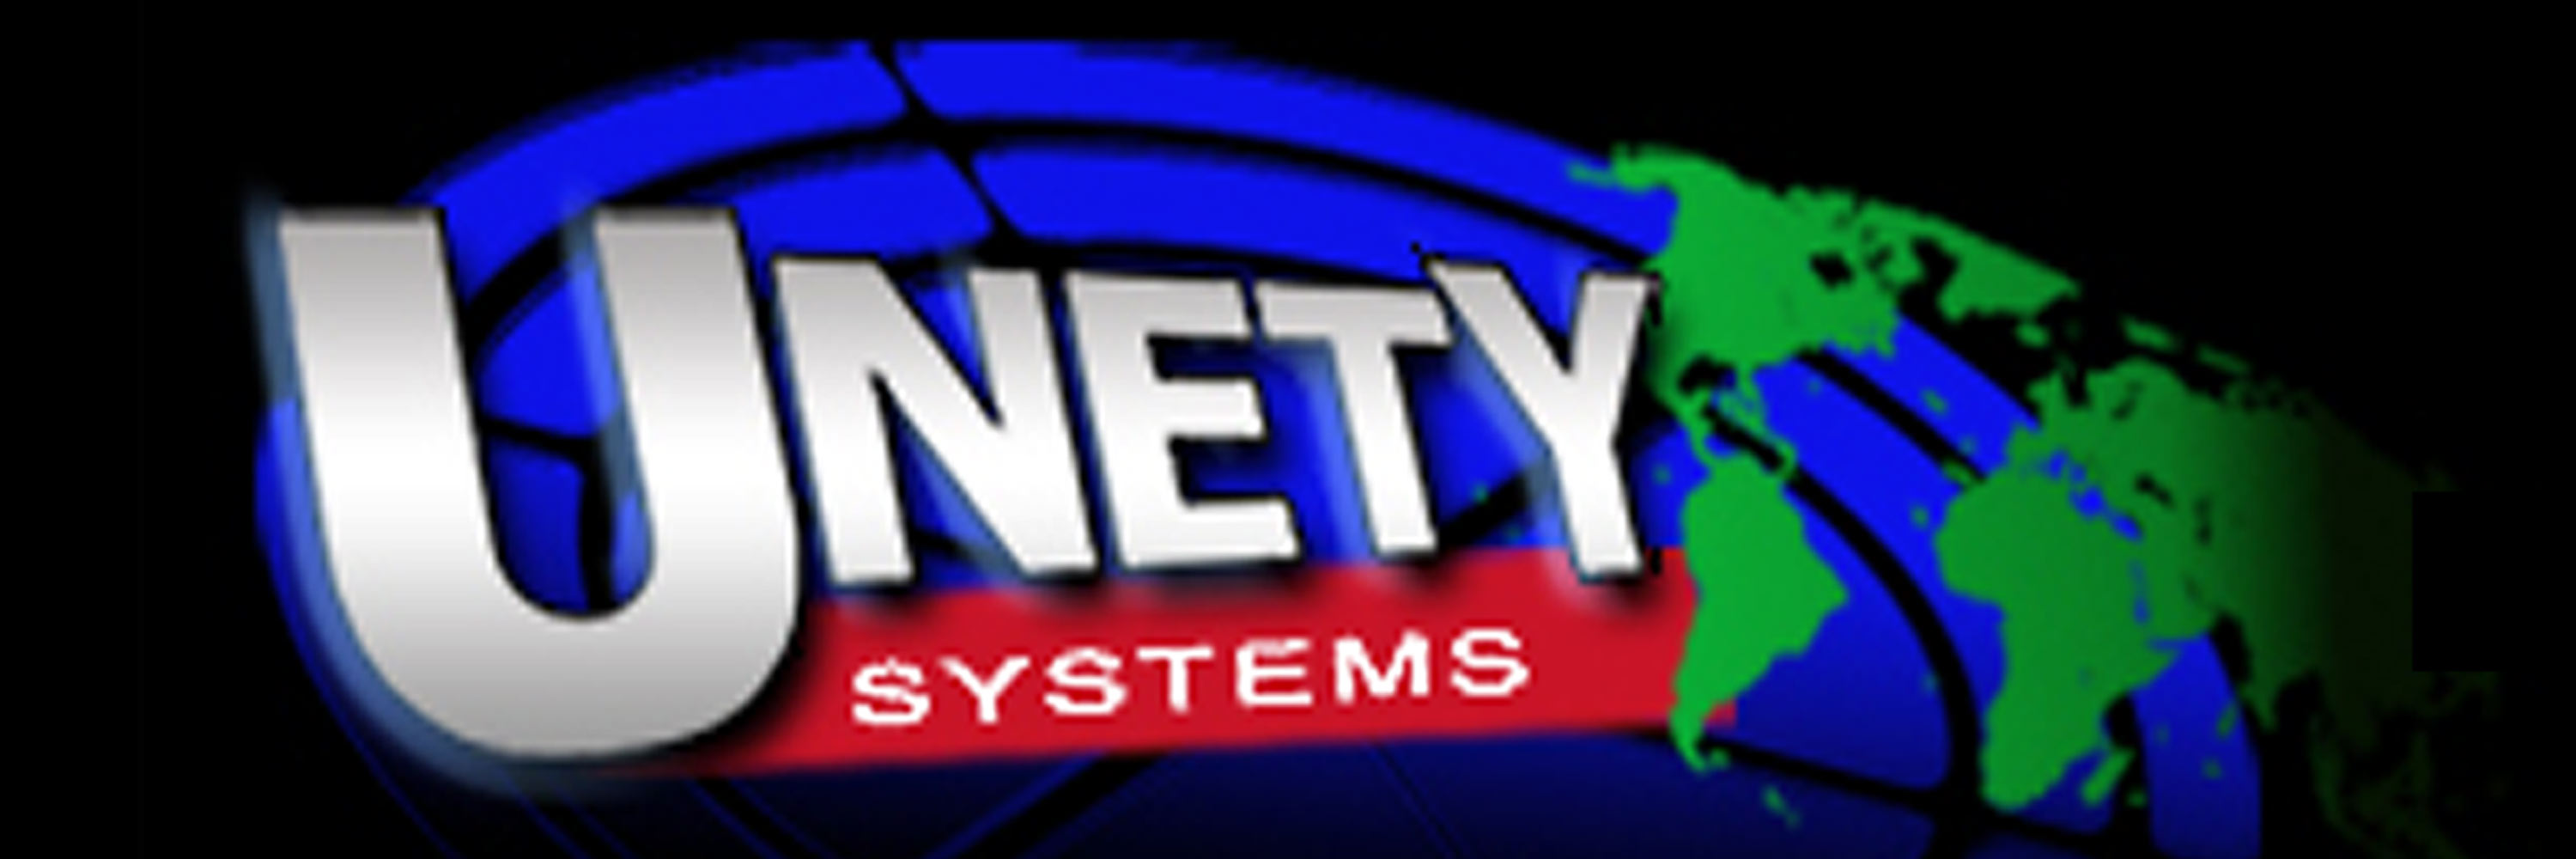 UNETY Systems, Inc.